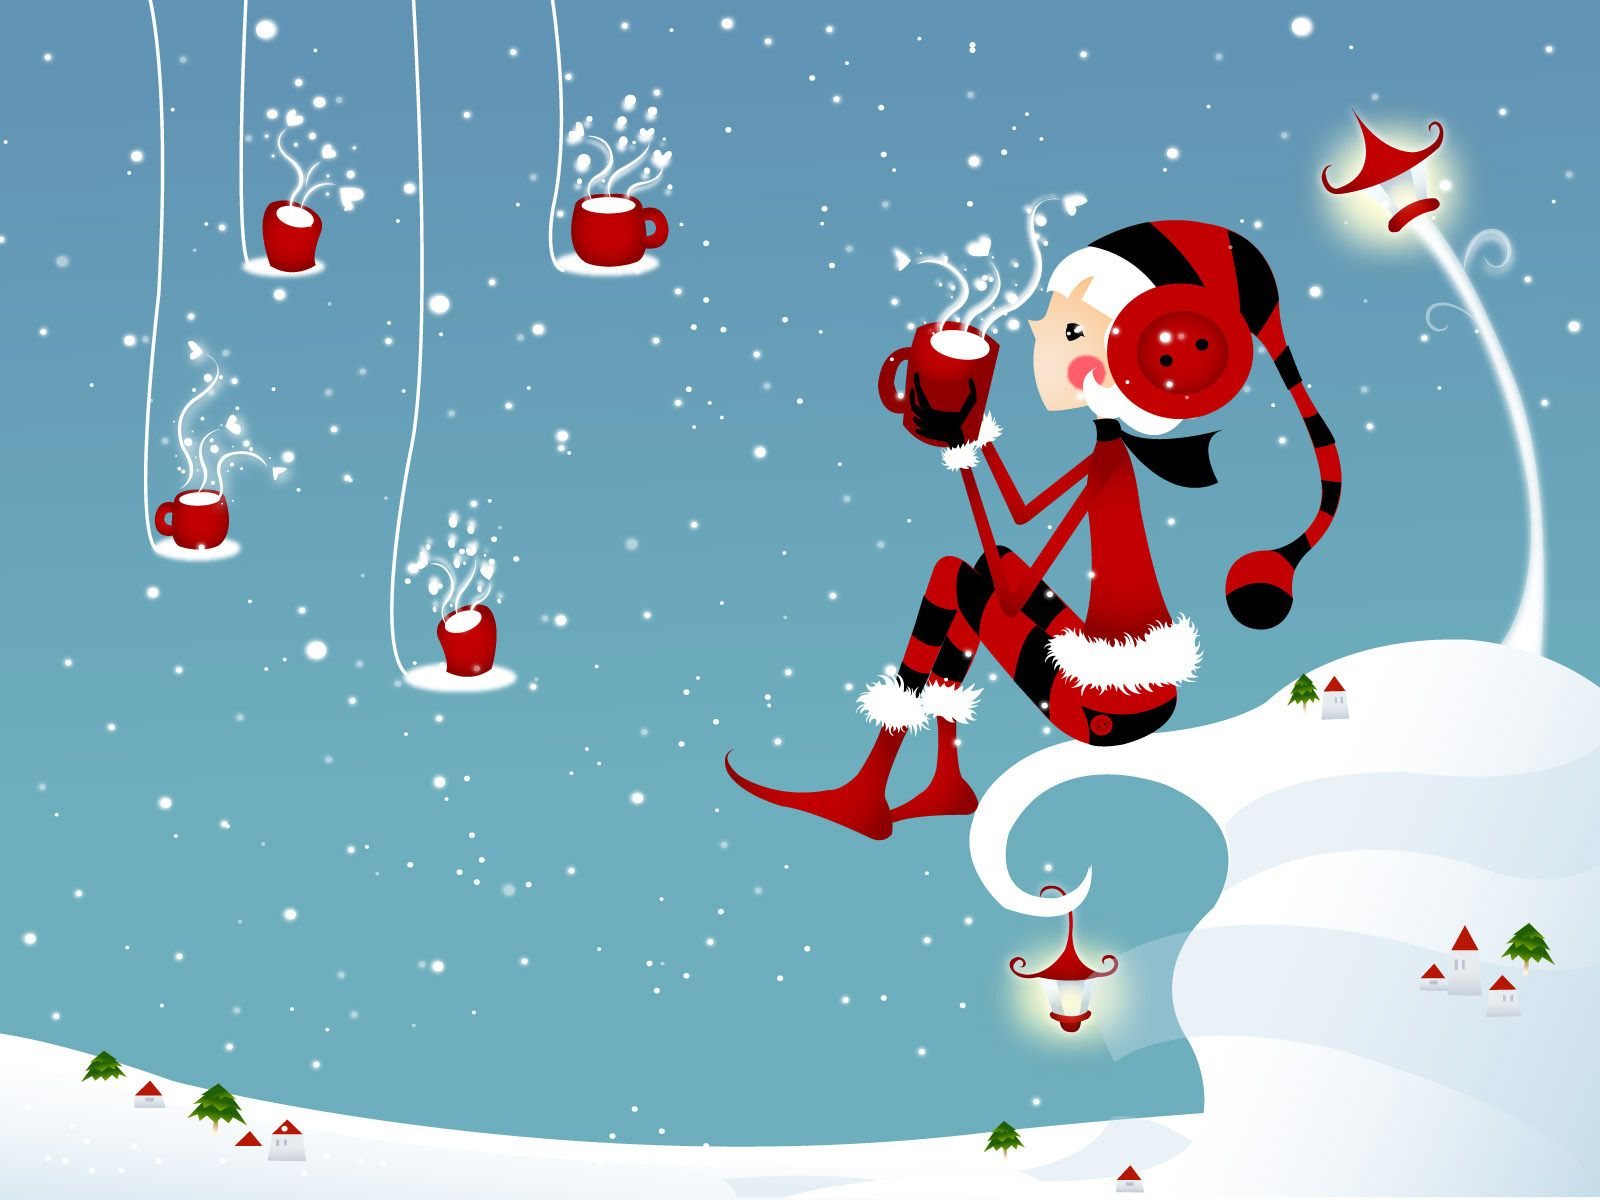 40 Free Animated Christmas Wallpaper for Desktop